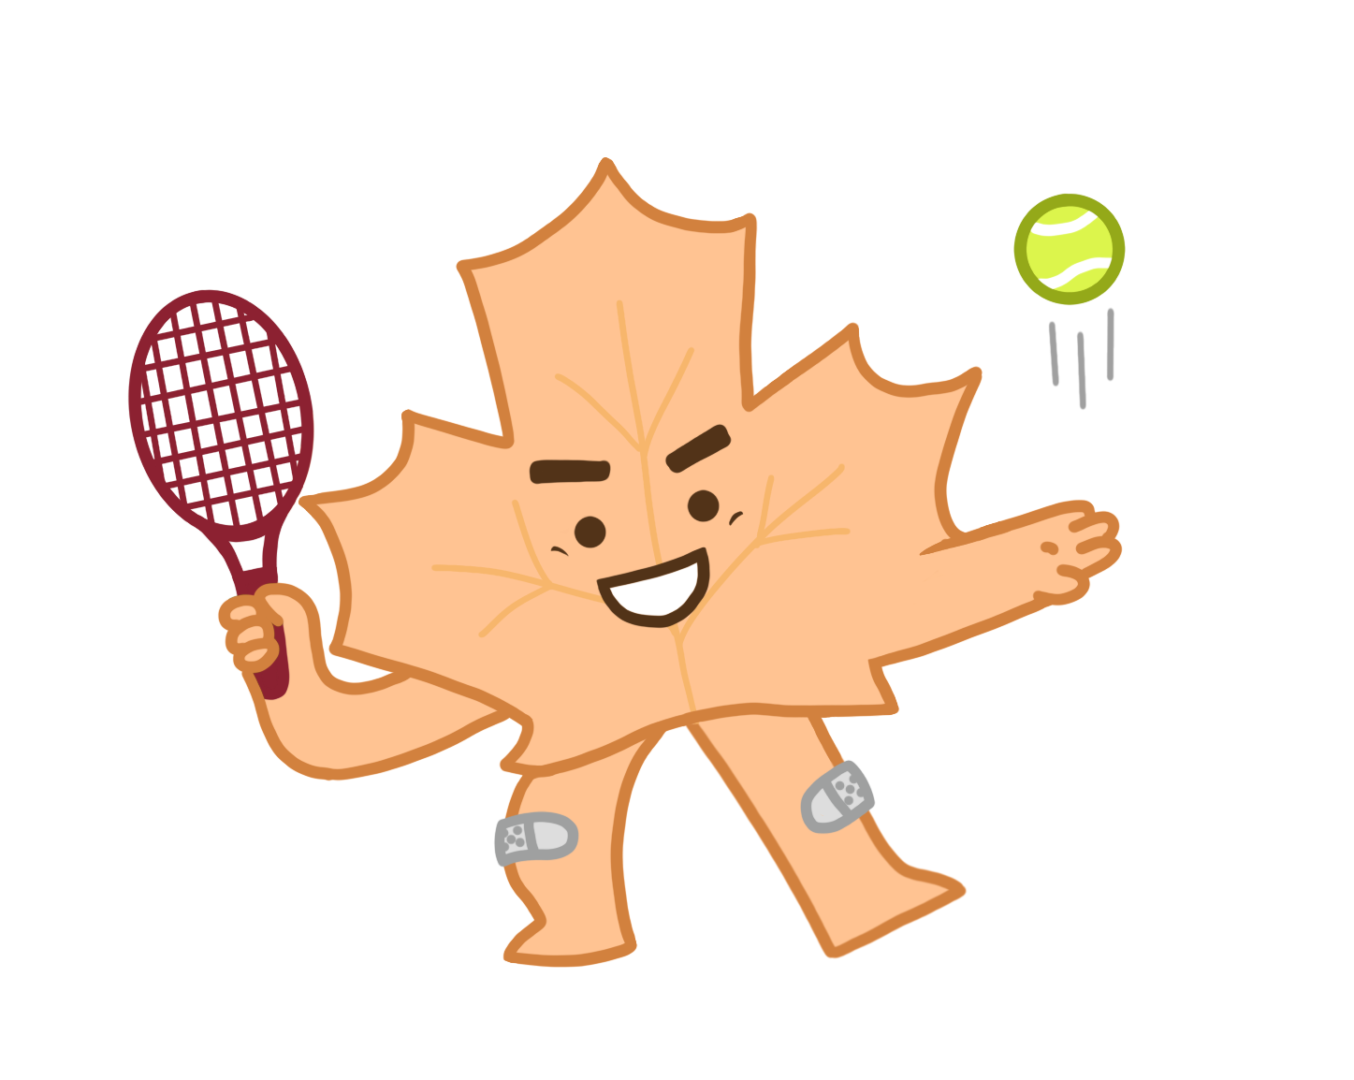 Orange leaf after vein treatment playing tennis